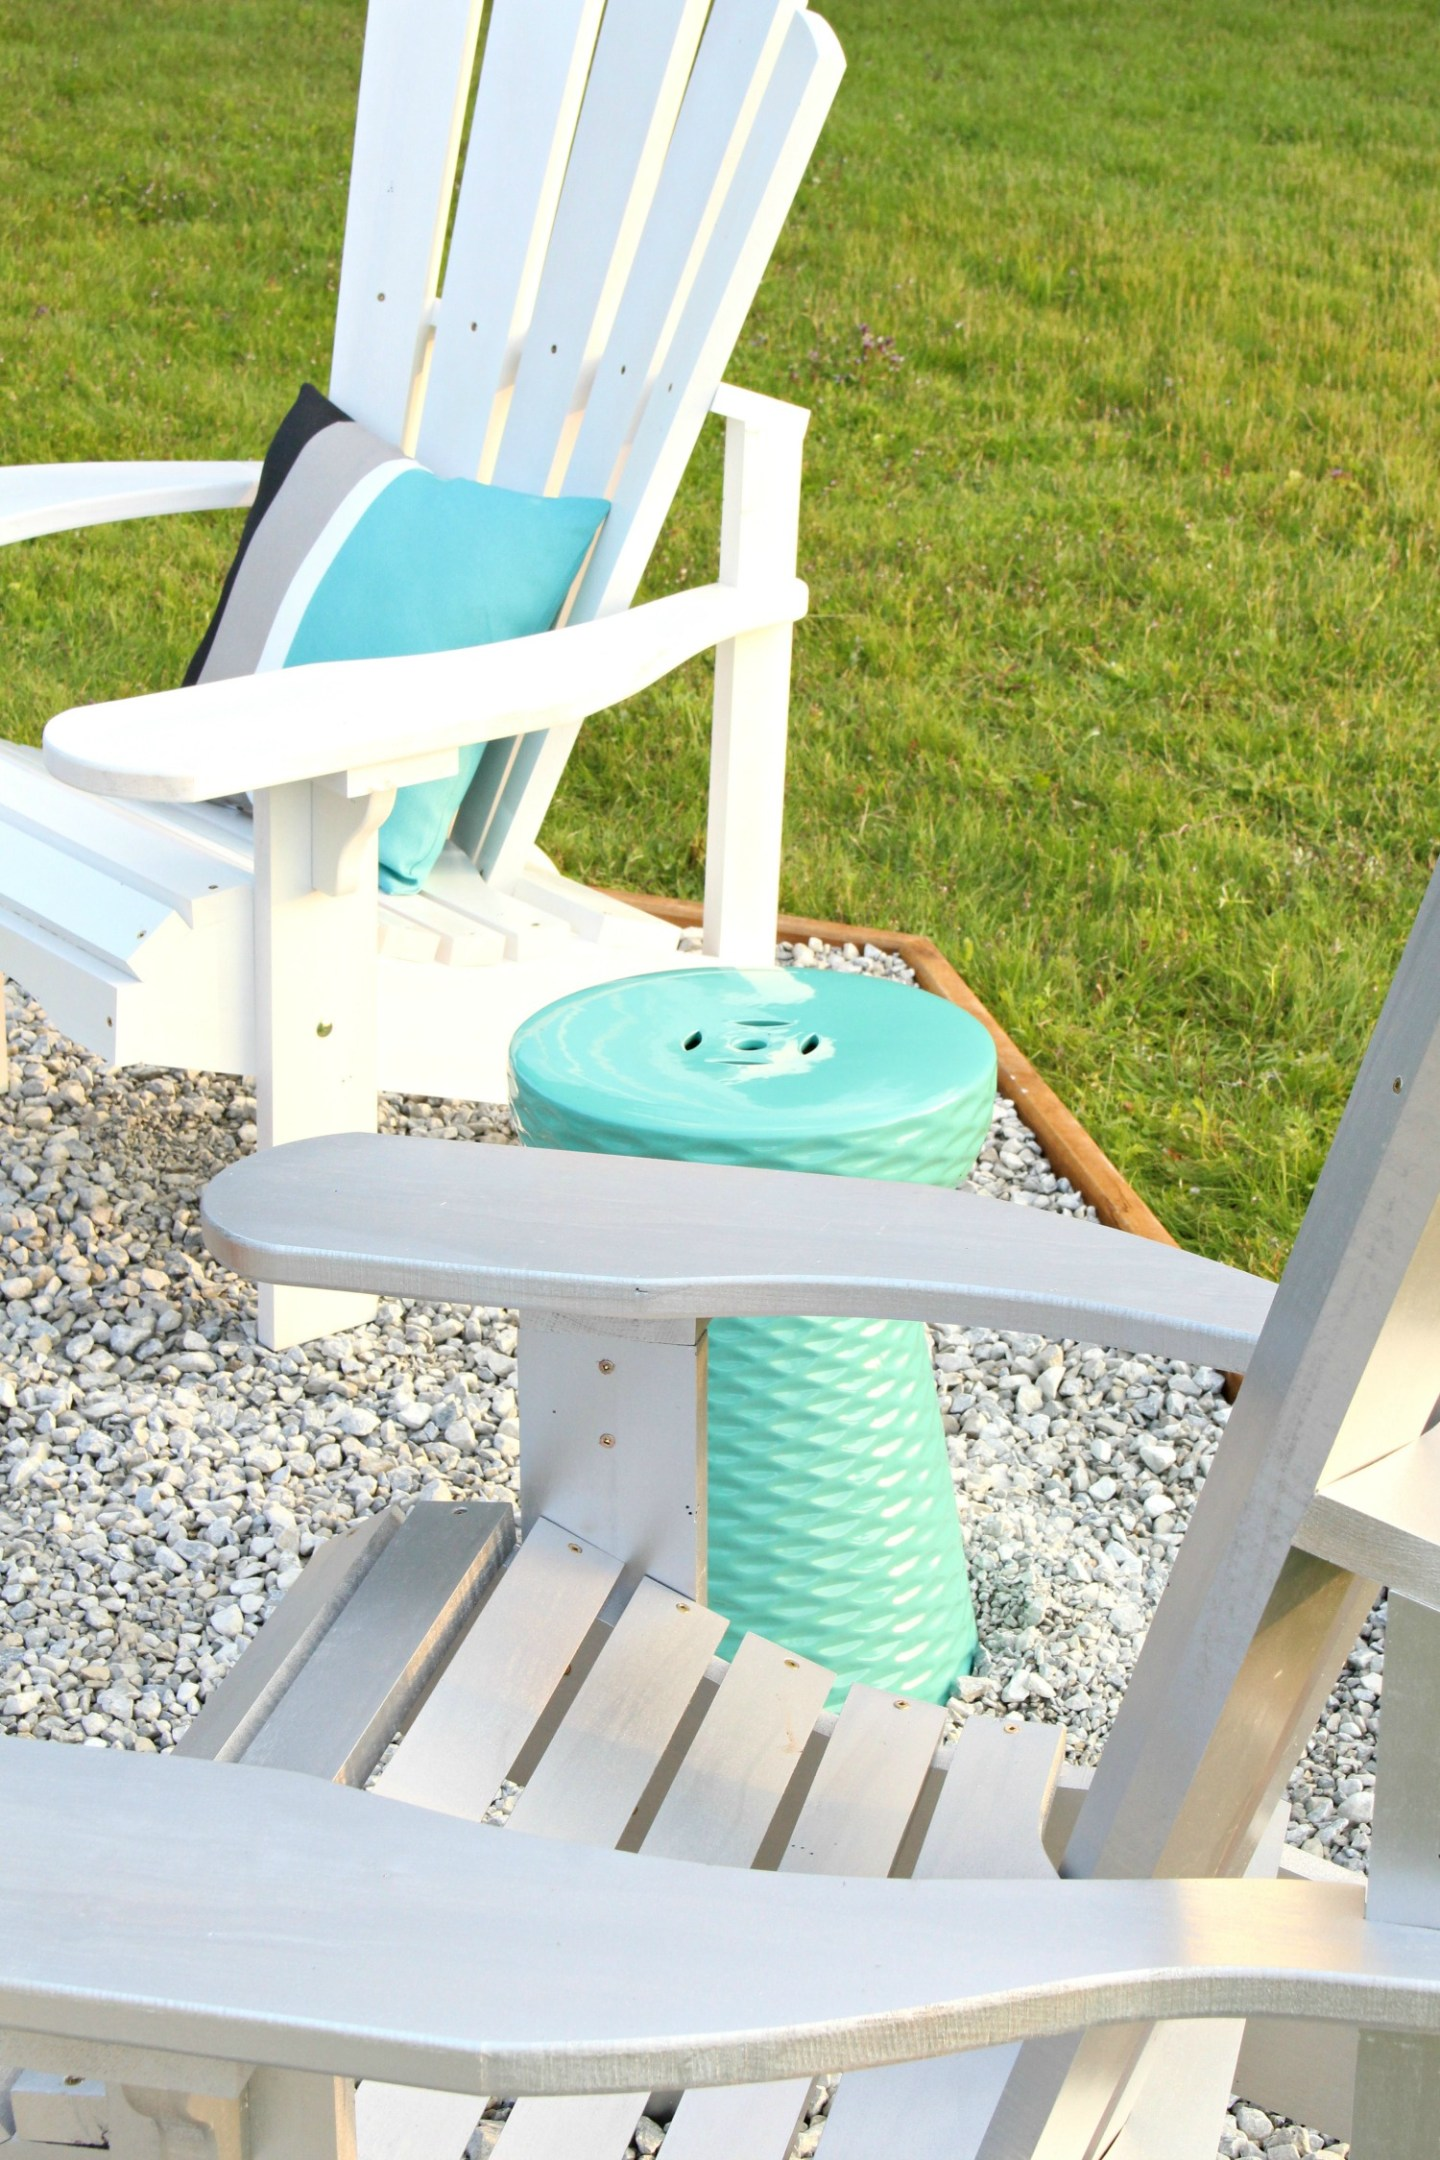 Beachy Fire Pit Makeover + DIY Ombre Adirondack Chairs (Sponsored by The Home Depot Canada)